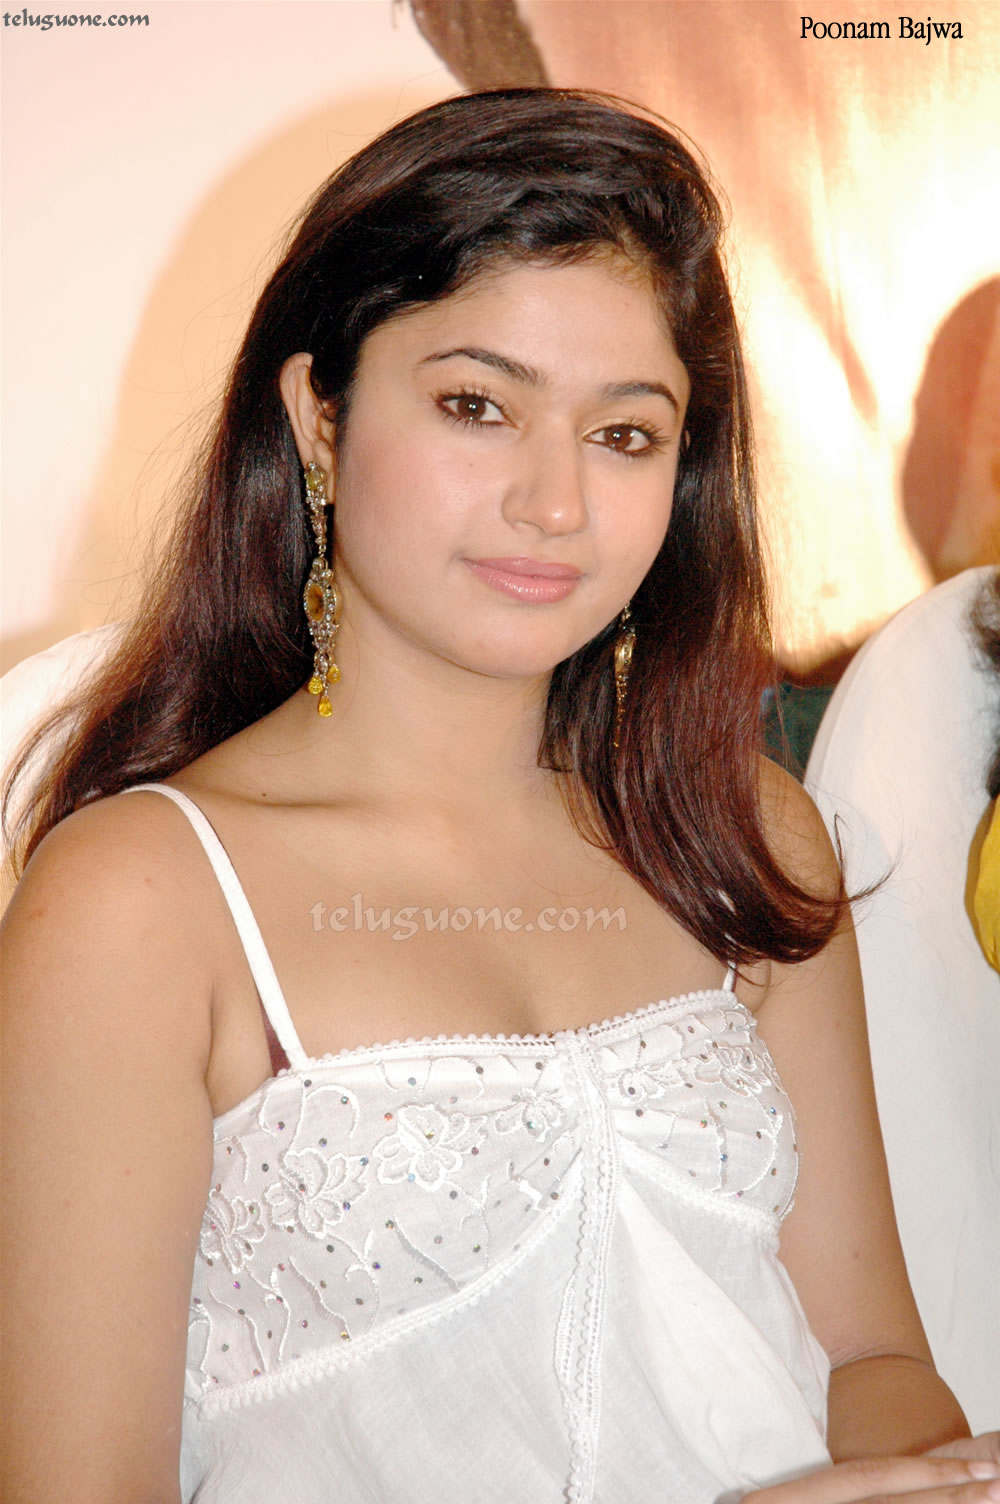 Beautiful Tamil Actress Poonam Bajwasexy Tamil Acterss -4626